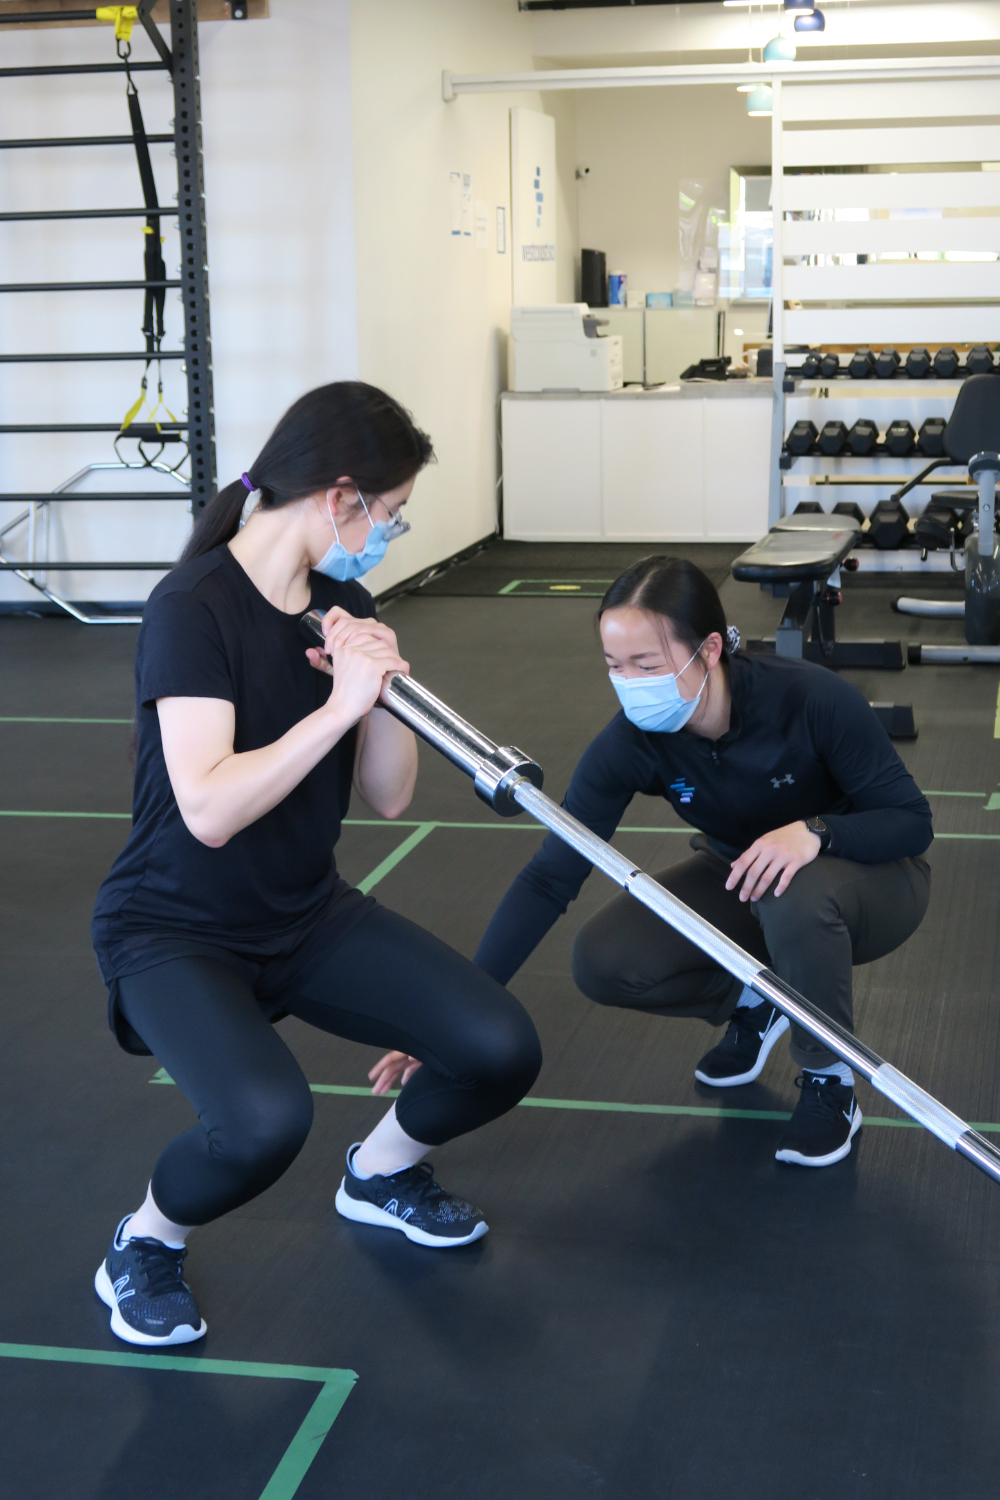 kinesiologist guiding exercise for covid 19 recovery program